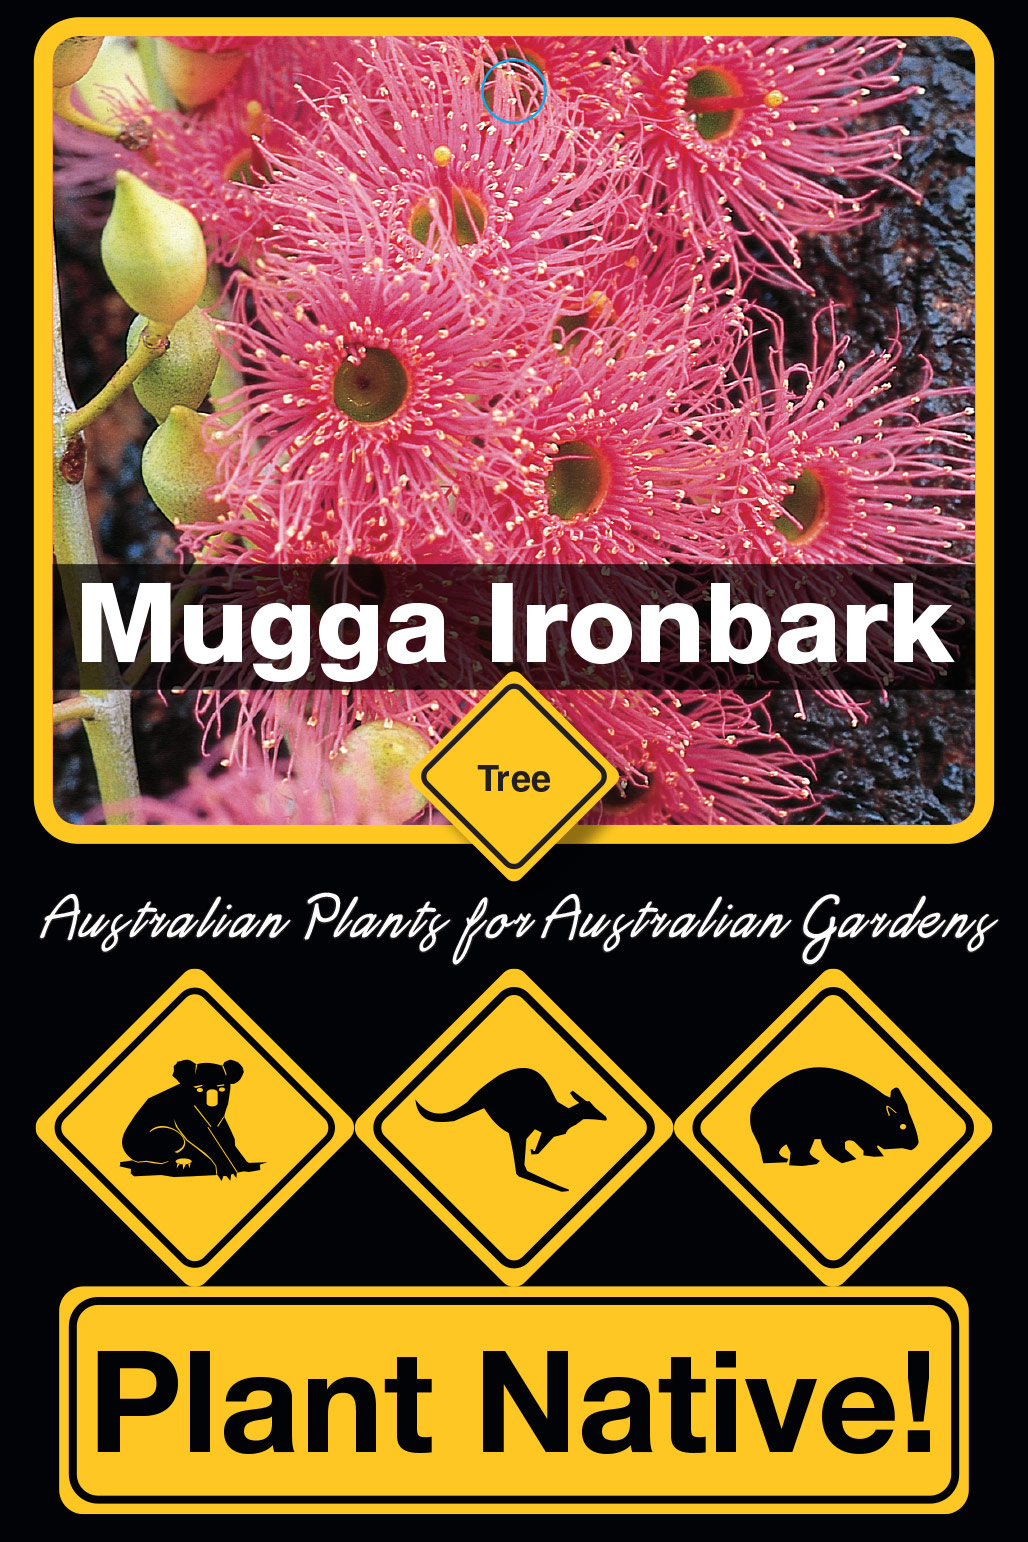 Mugga Ironbark - Plant Native!